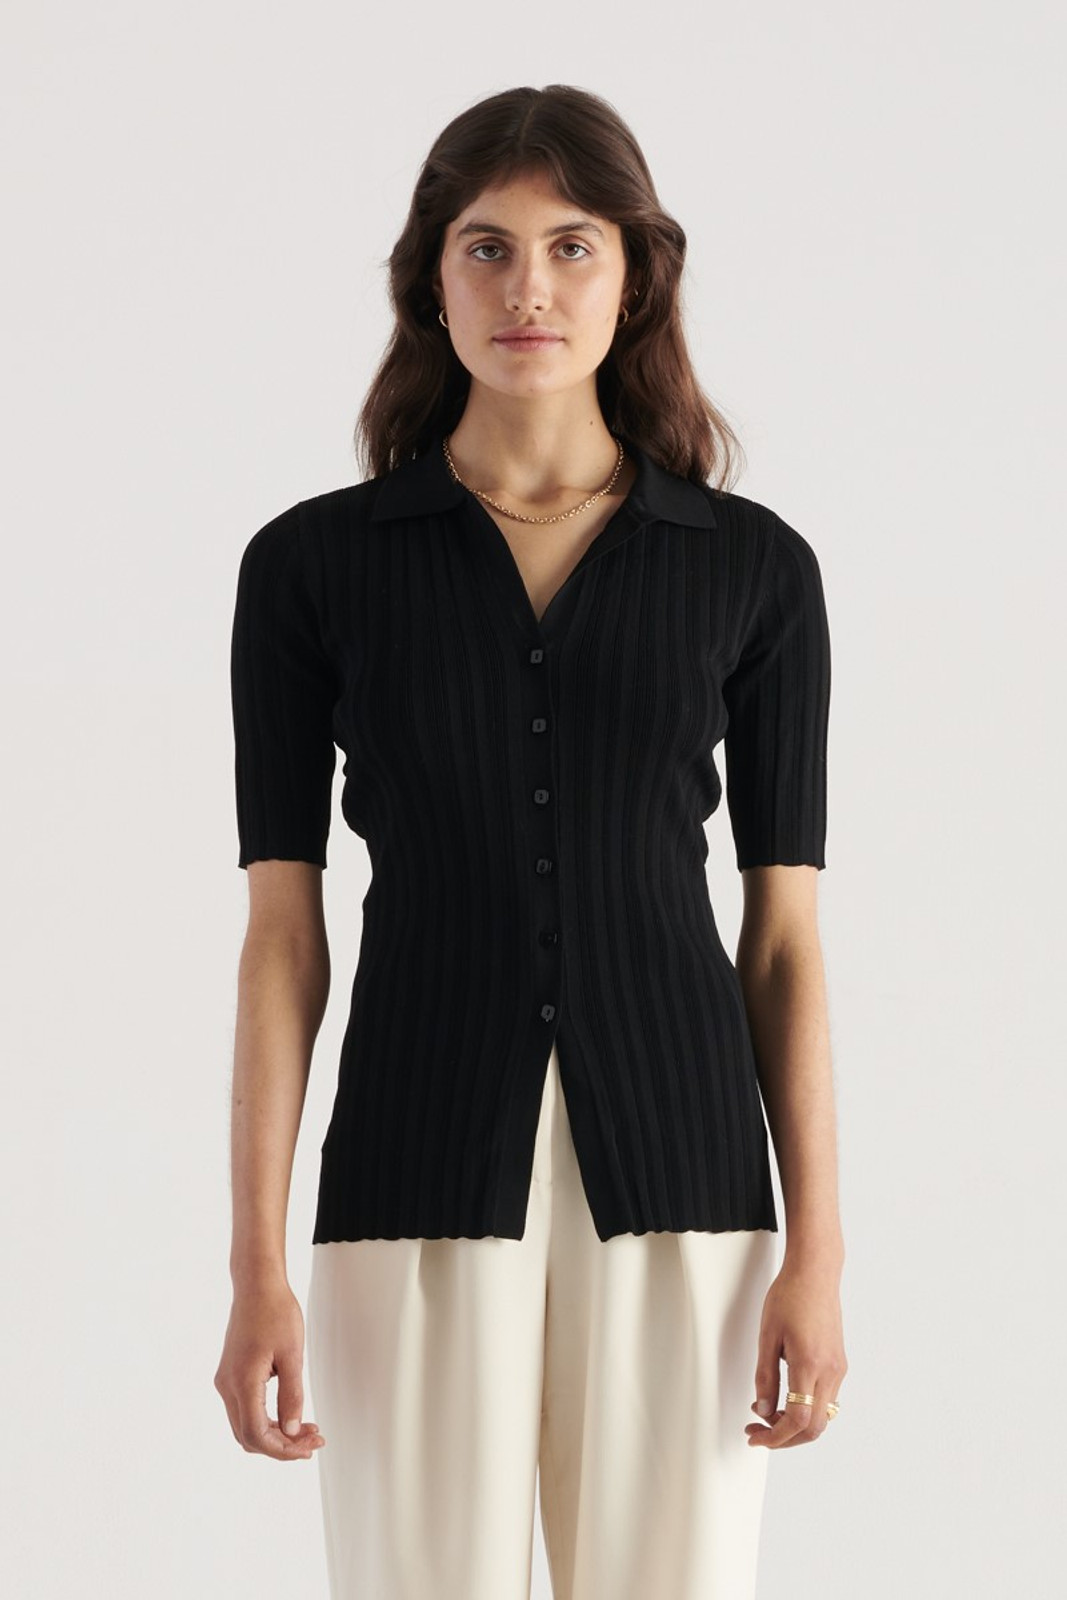 Elka Collective Melody Knit Black  0